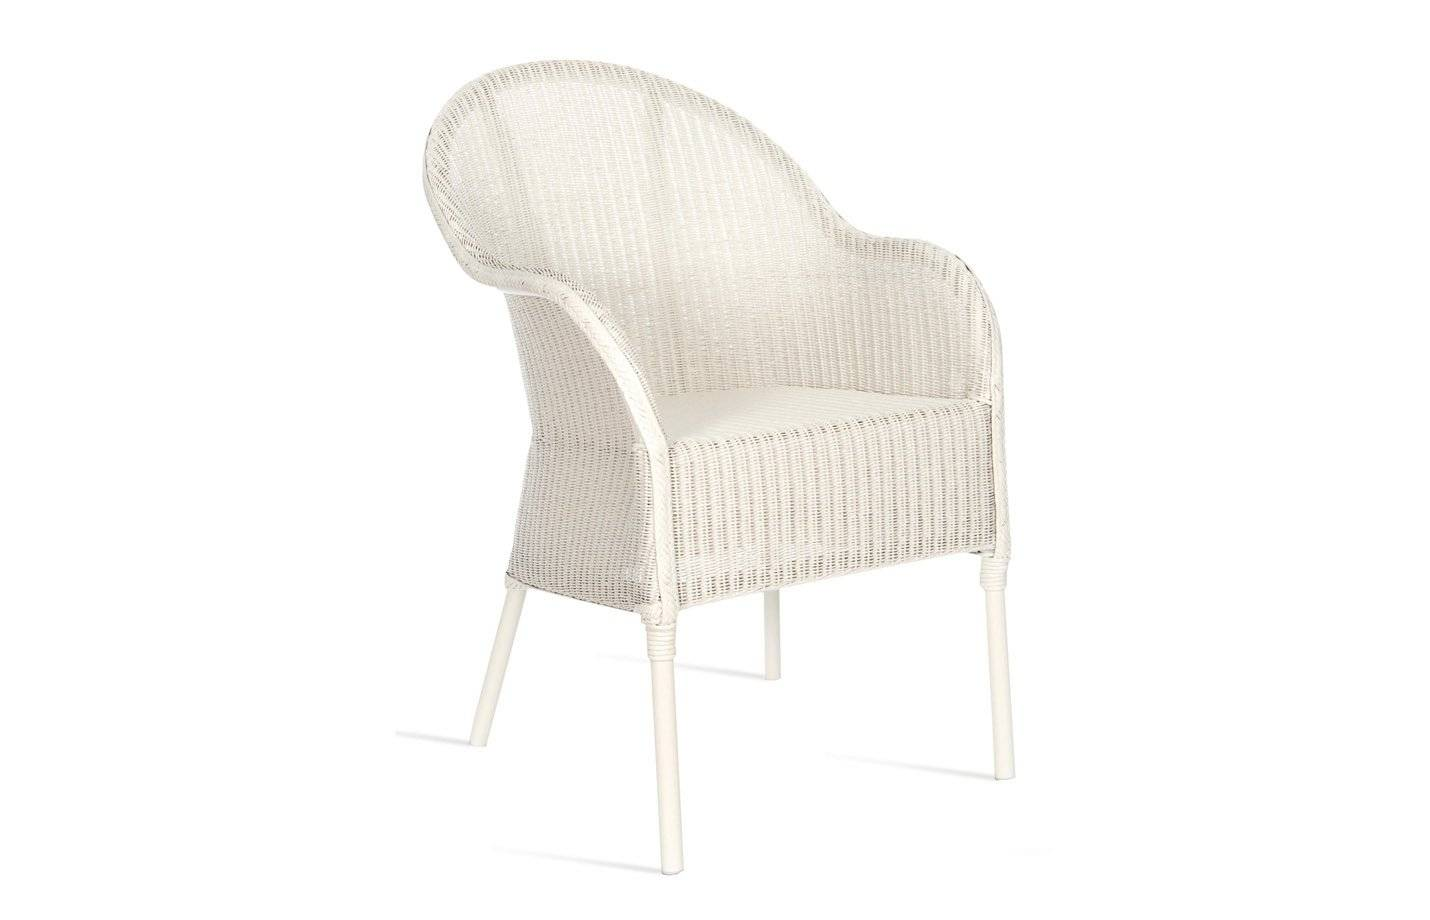 Vincent Nice Lloyd Loom Outdoor Dining Chair by Vincent Sheppard Nacre Zinc